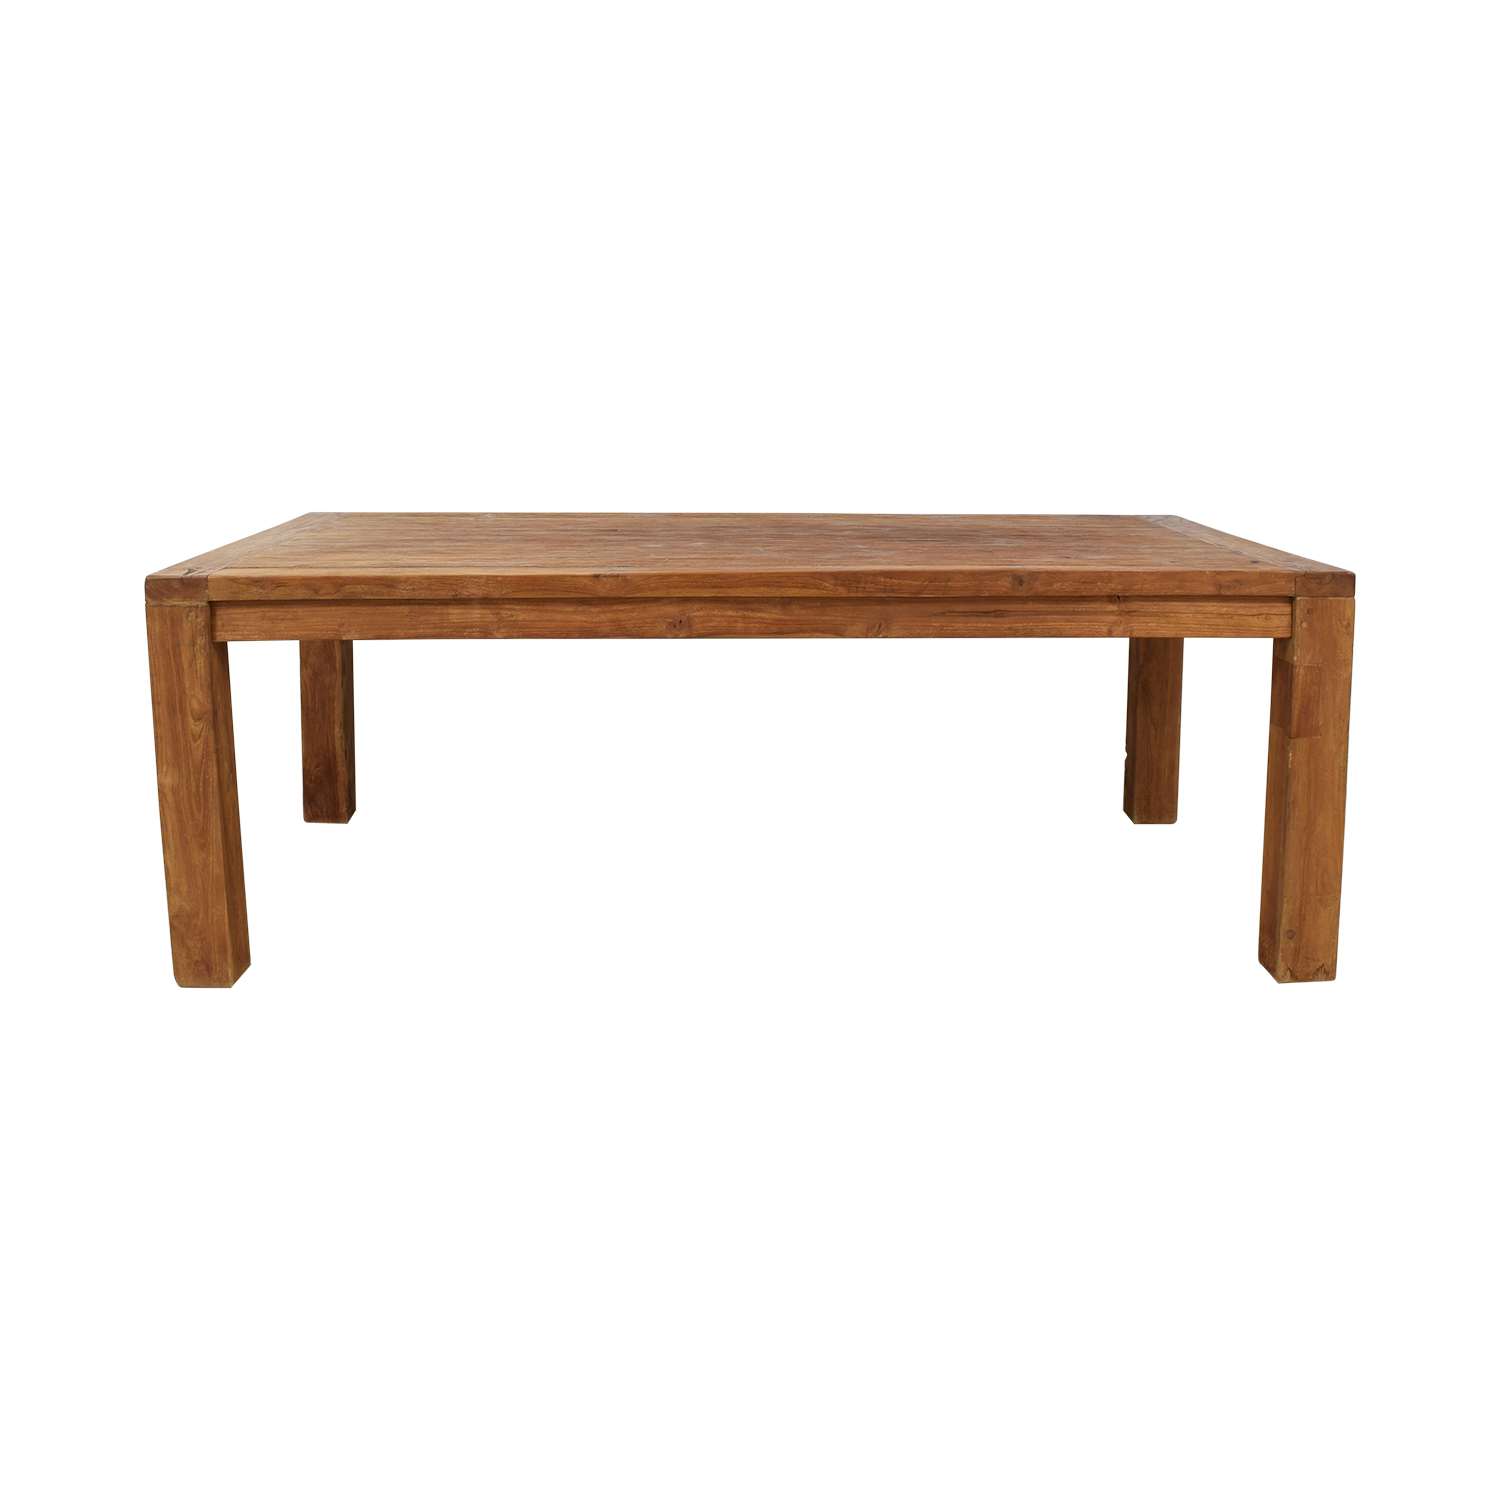 Antique Balinese Wood Dining Table price